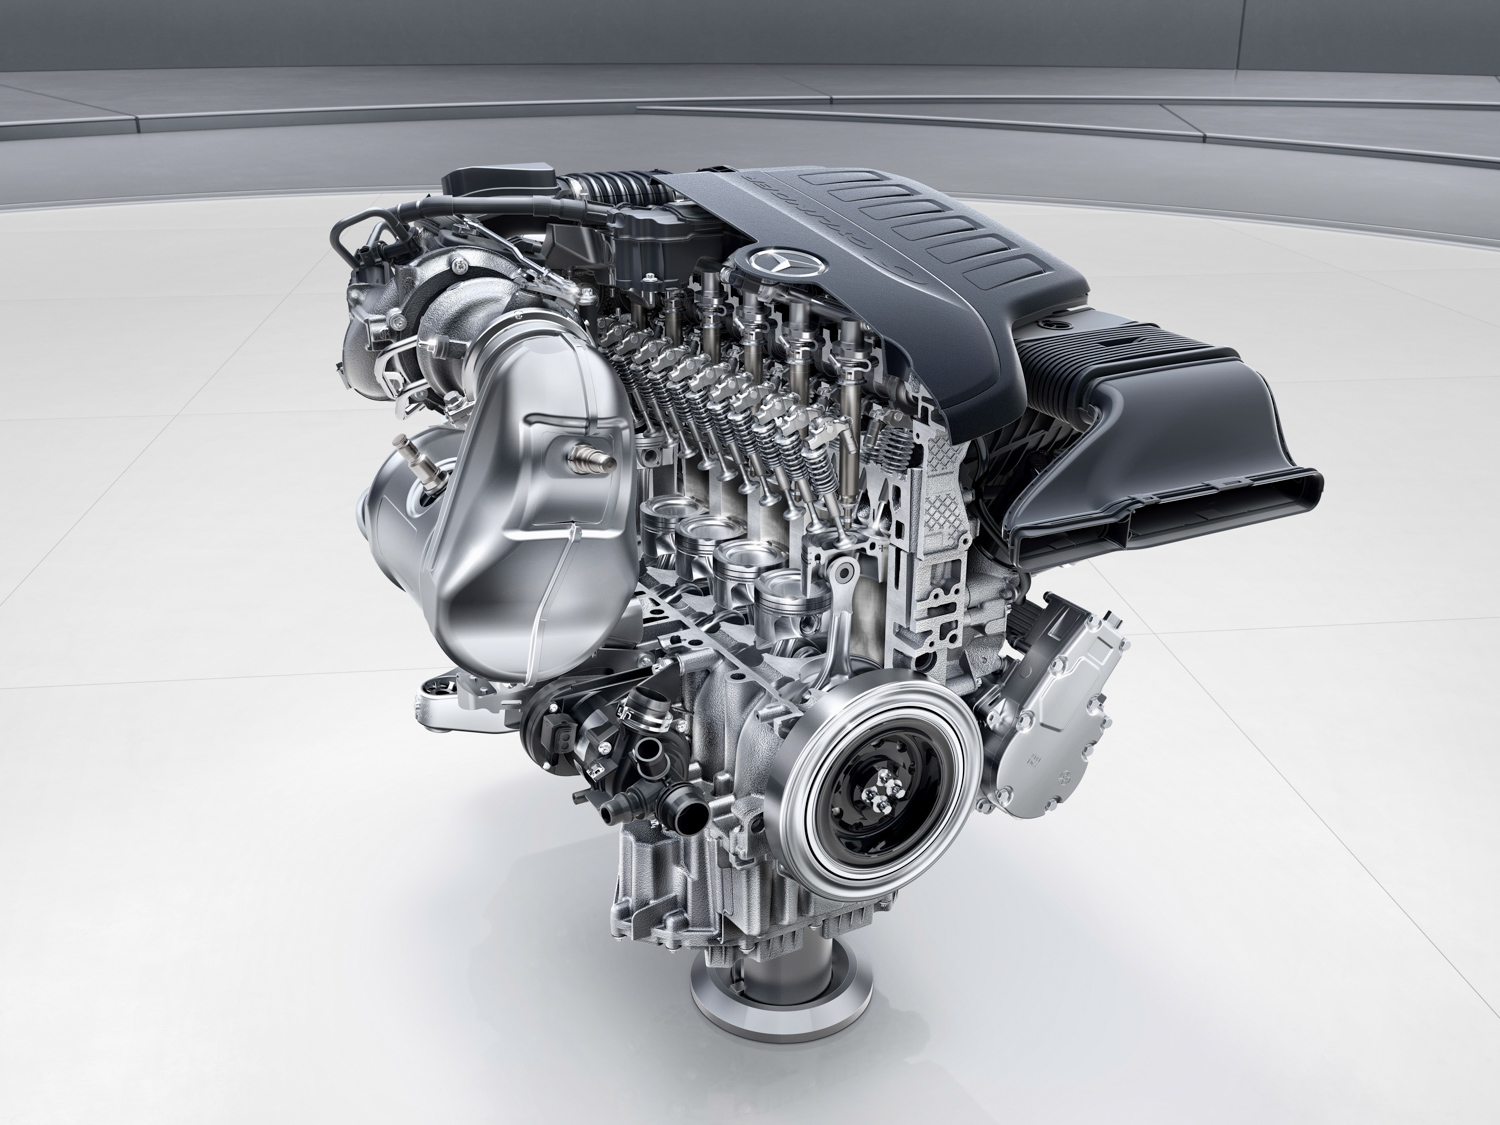 Why the inline-six is making a comeback